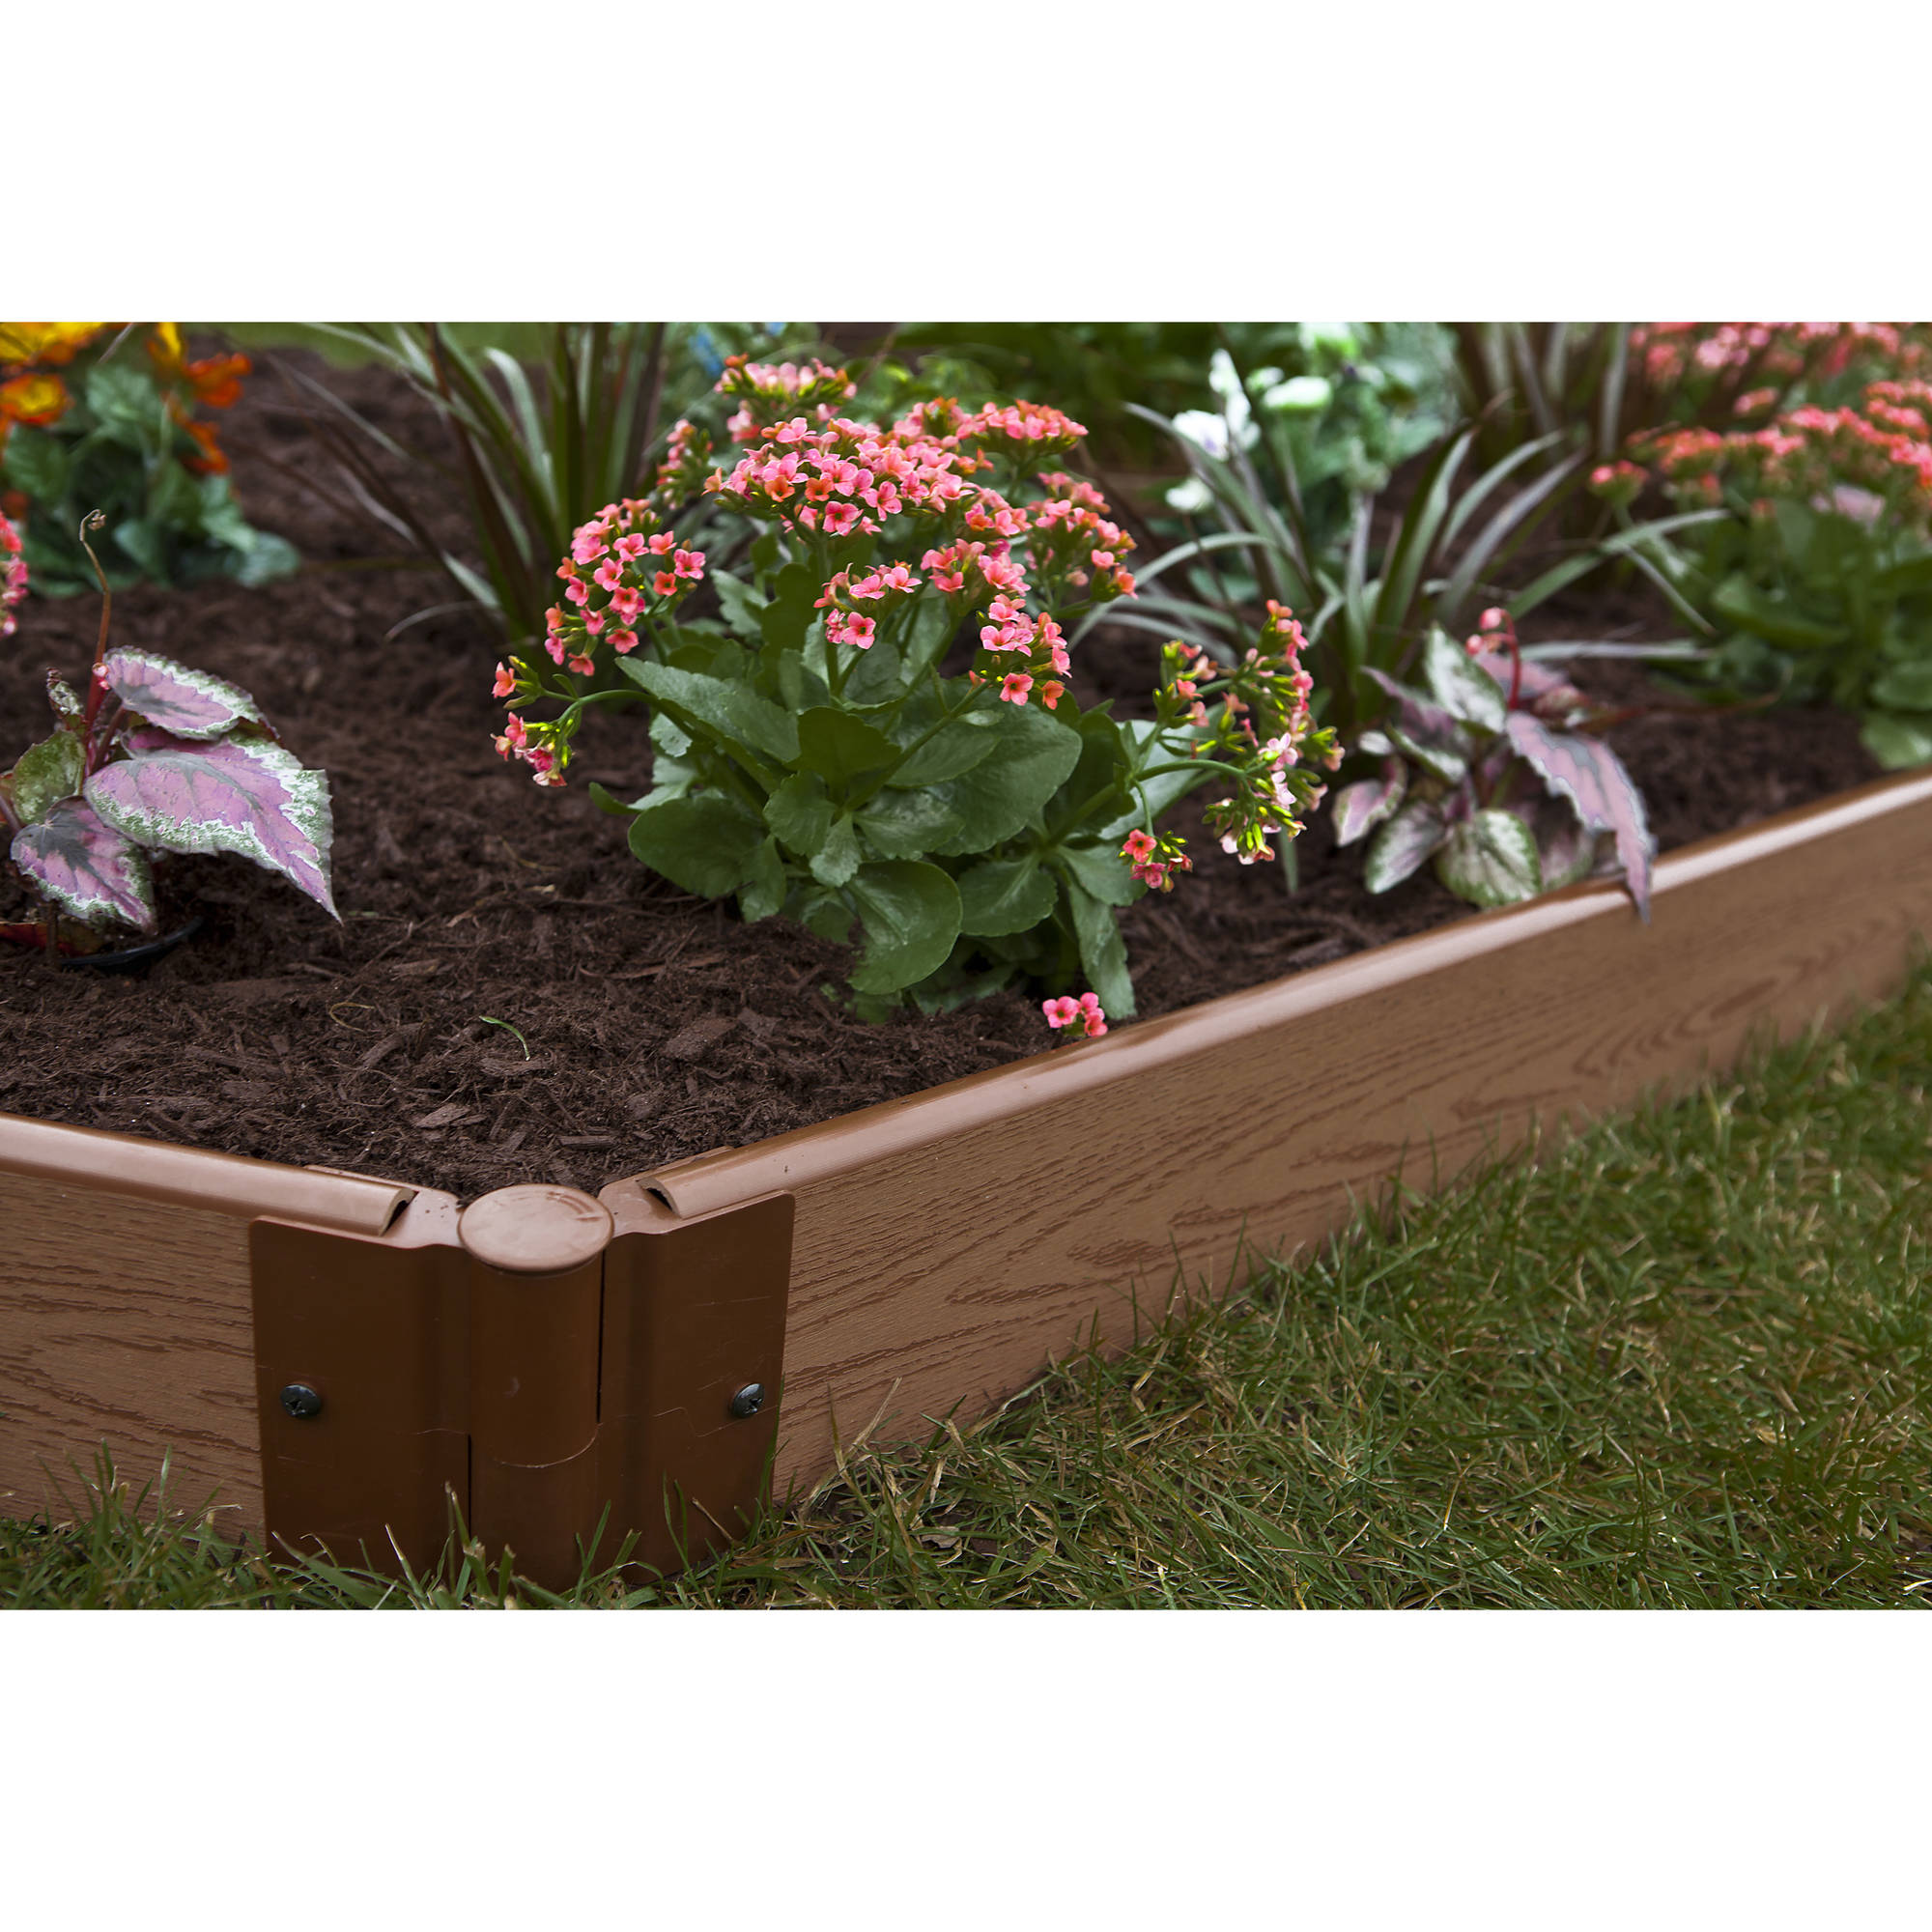 Frame It All One Inch Series 64ft. x 5.5in. Composite Landscape Edging Kit